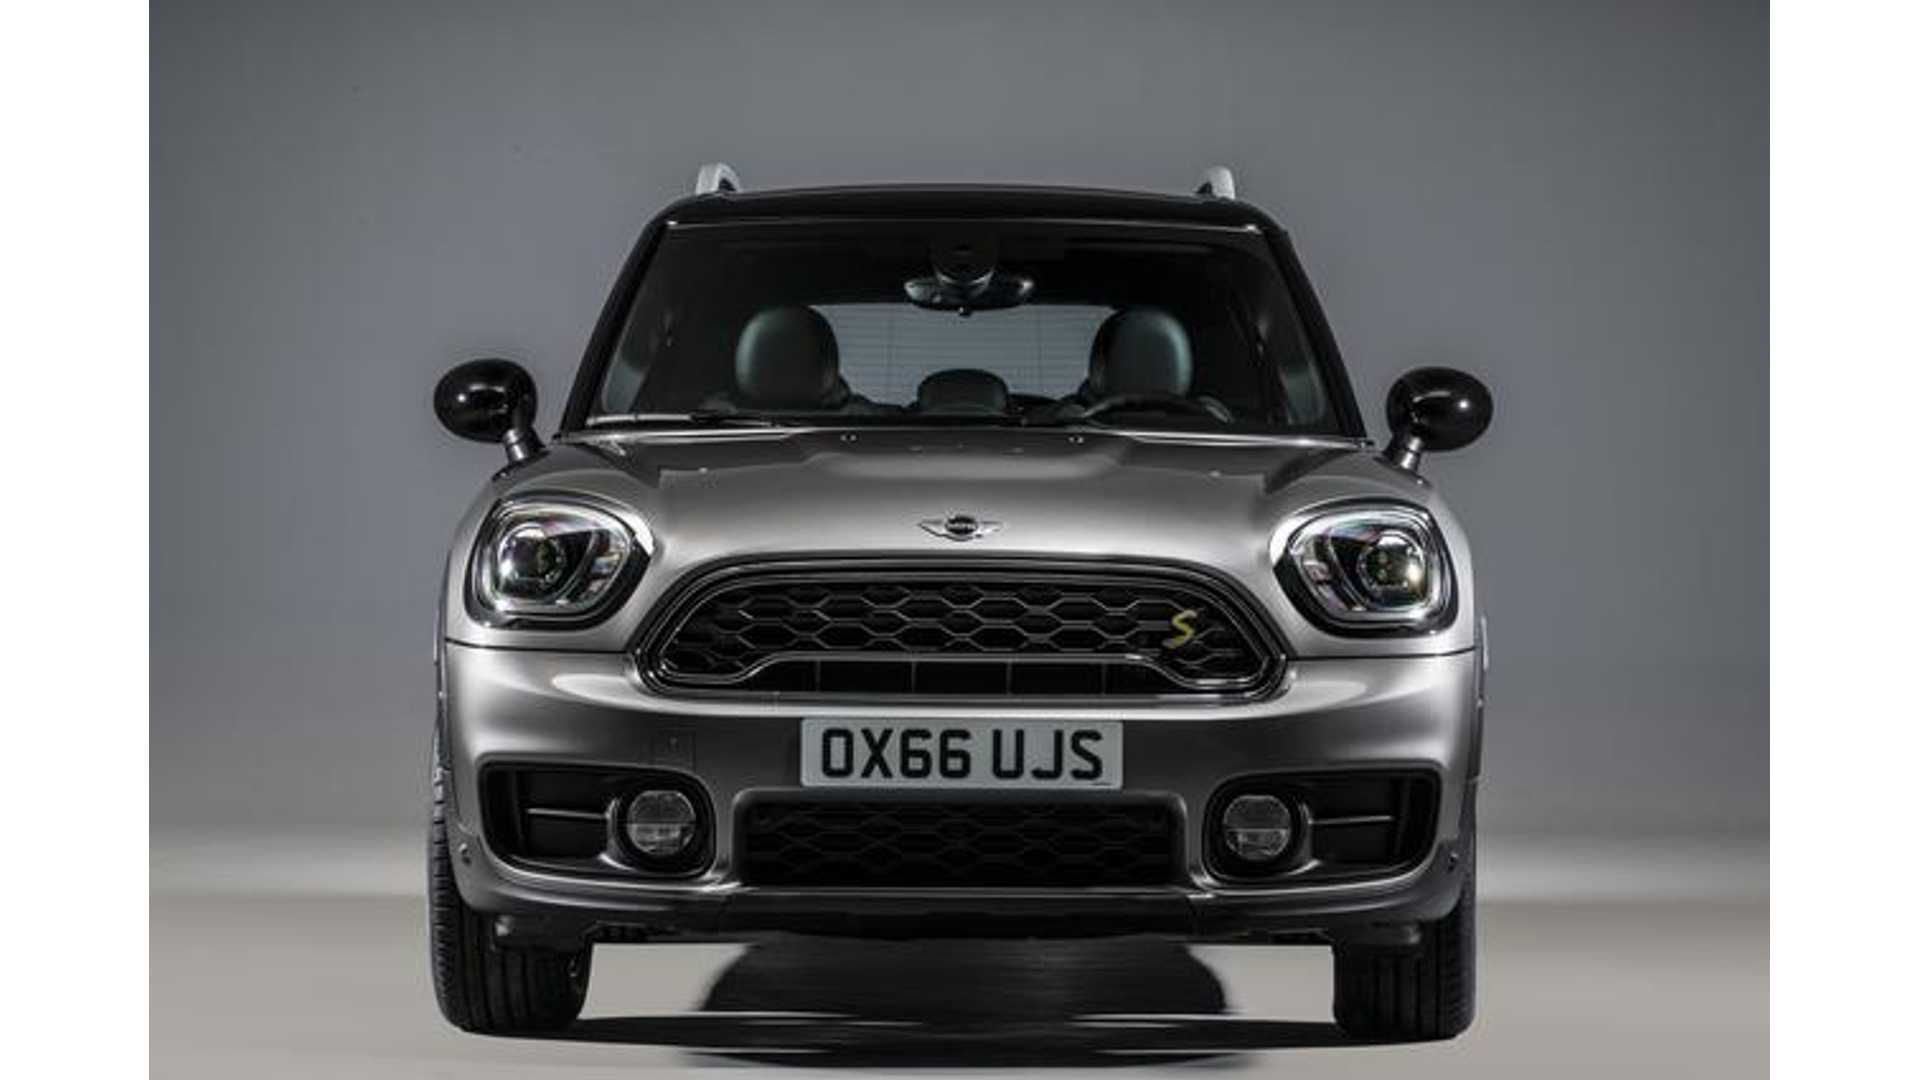 2017 Mini Cooper S E Countryman All4 Unveiled Phev Boasts Up To 24